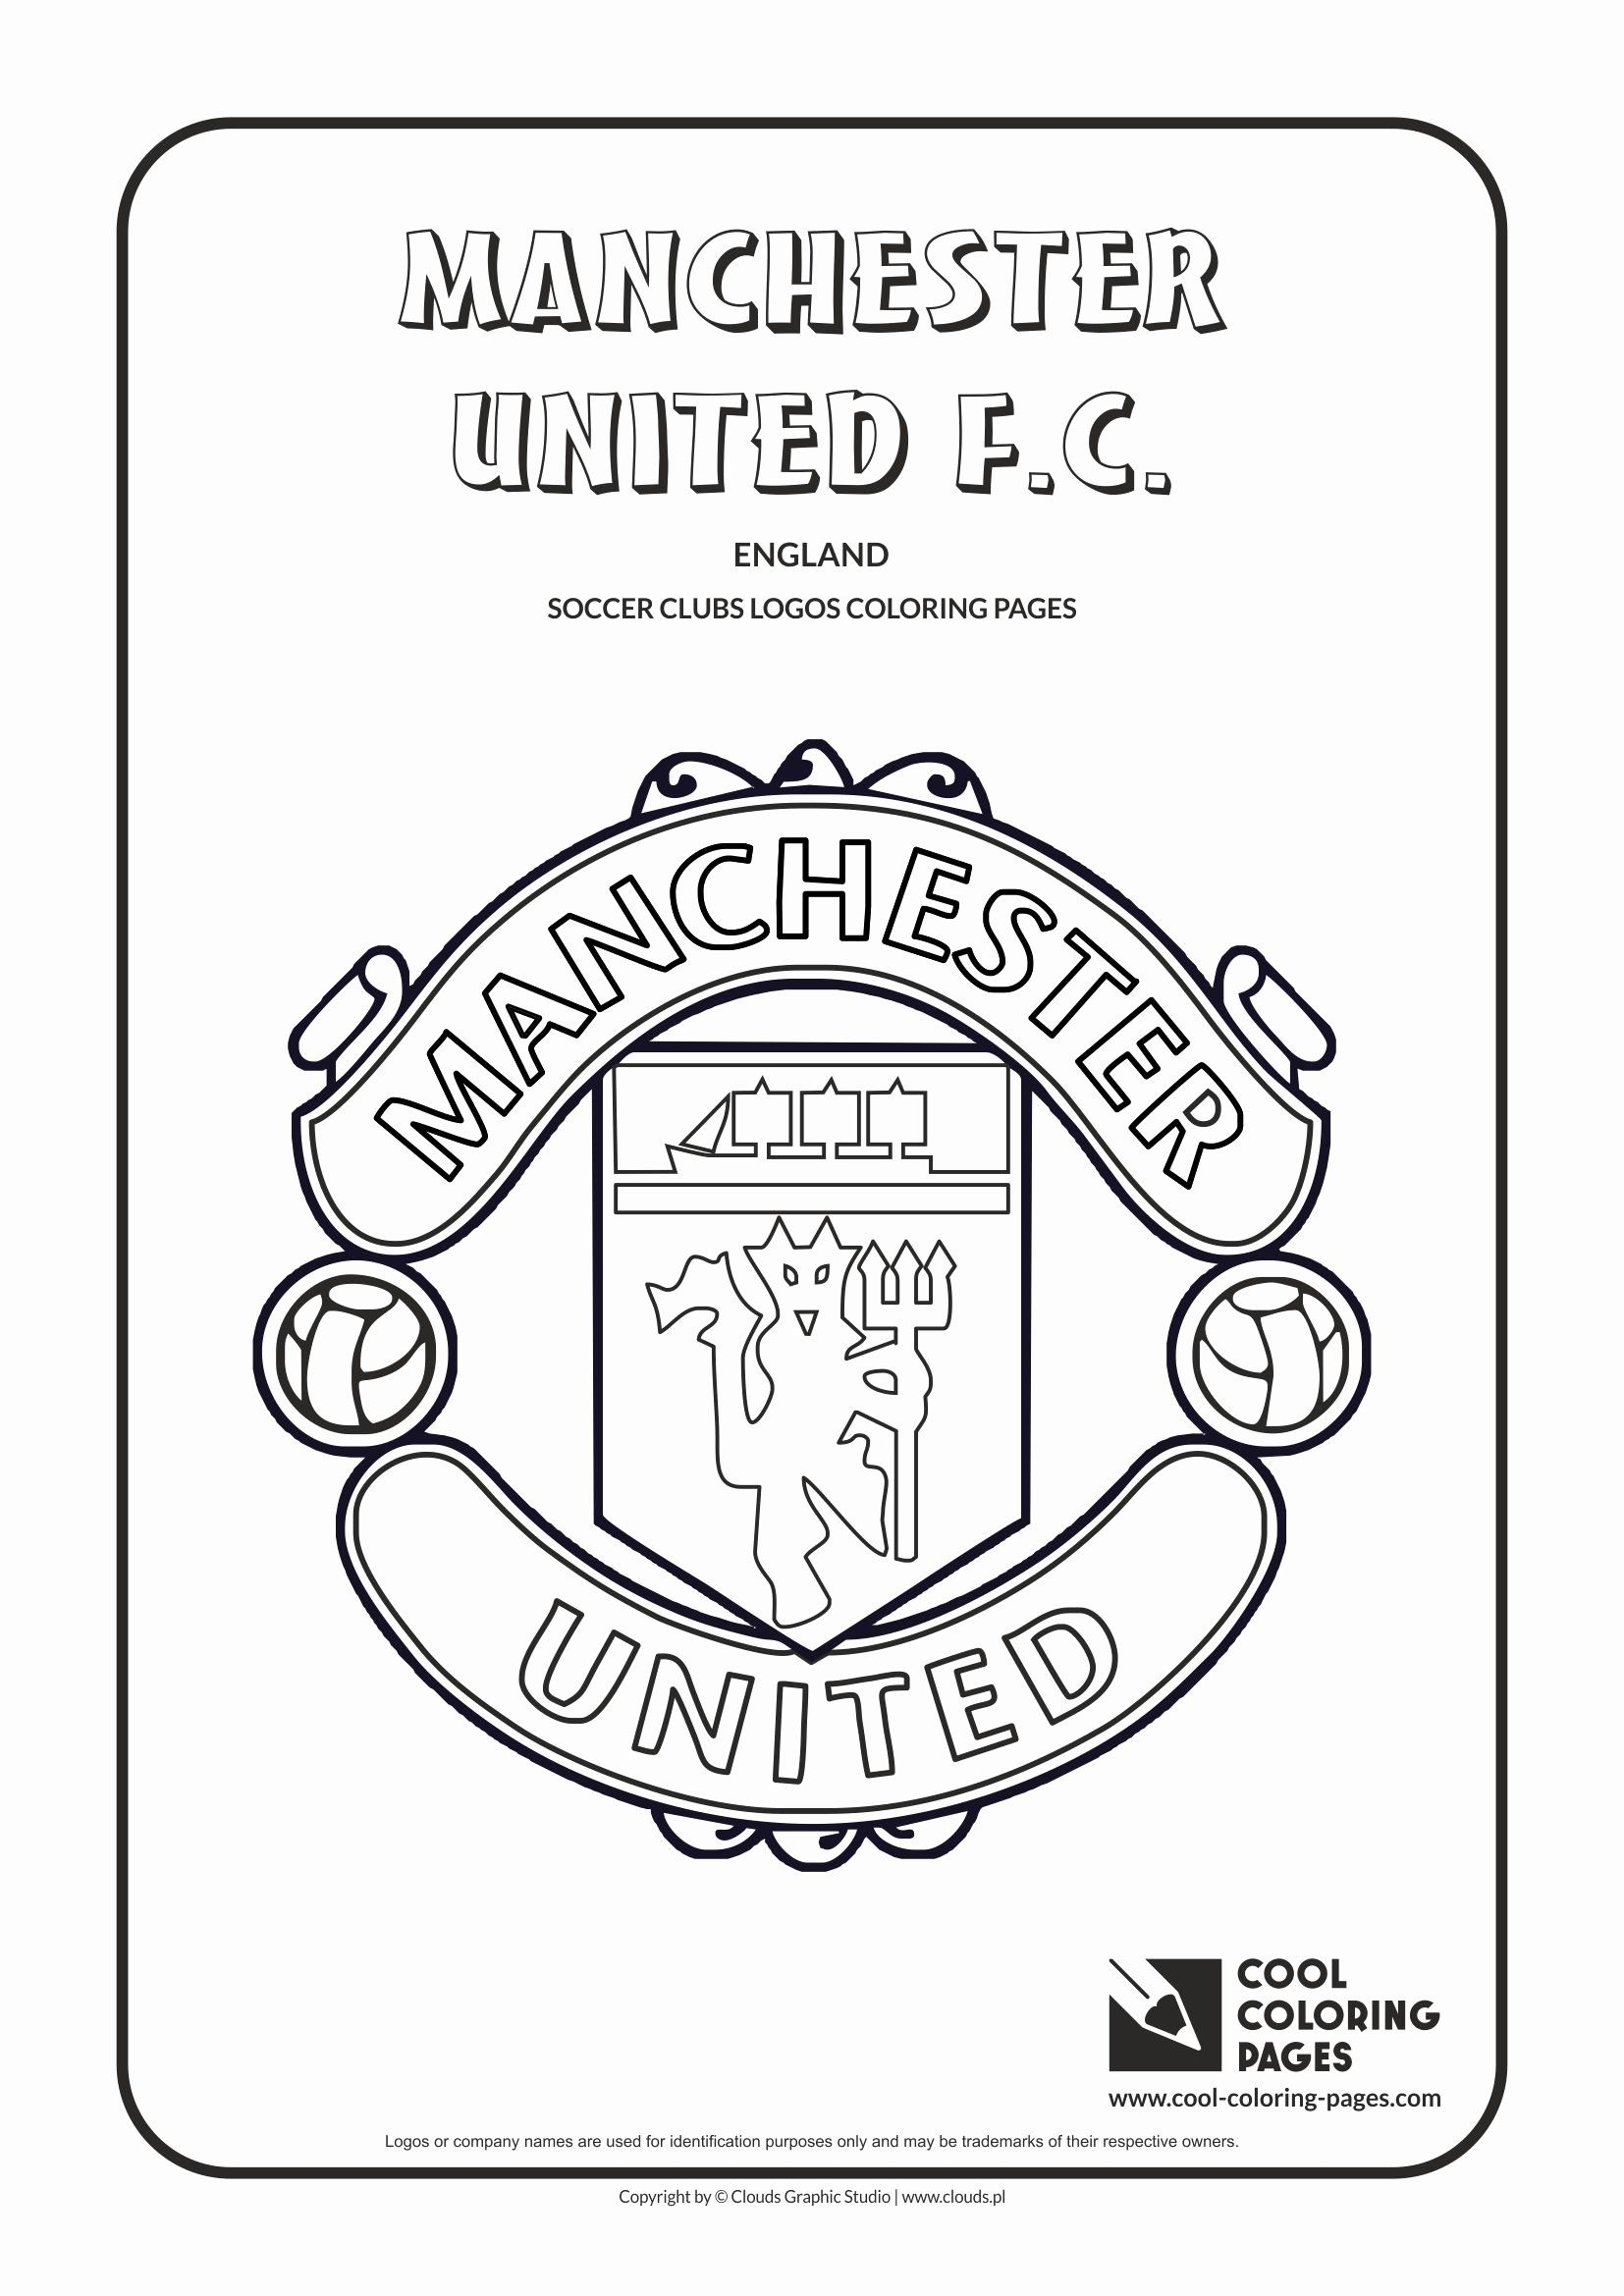 Do Not Enter Coloring Pages Beautiful Man Utd Crest Coloring Pages